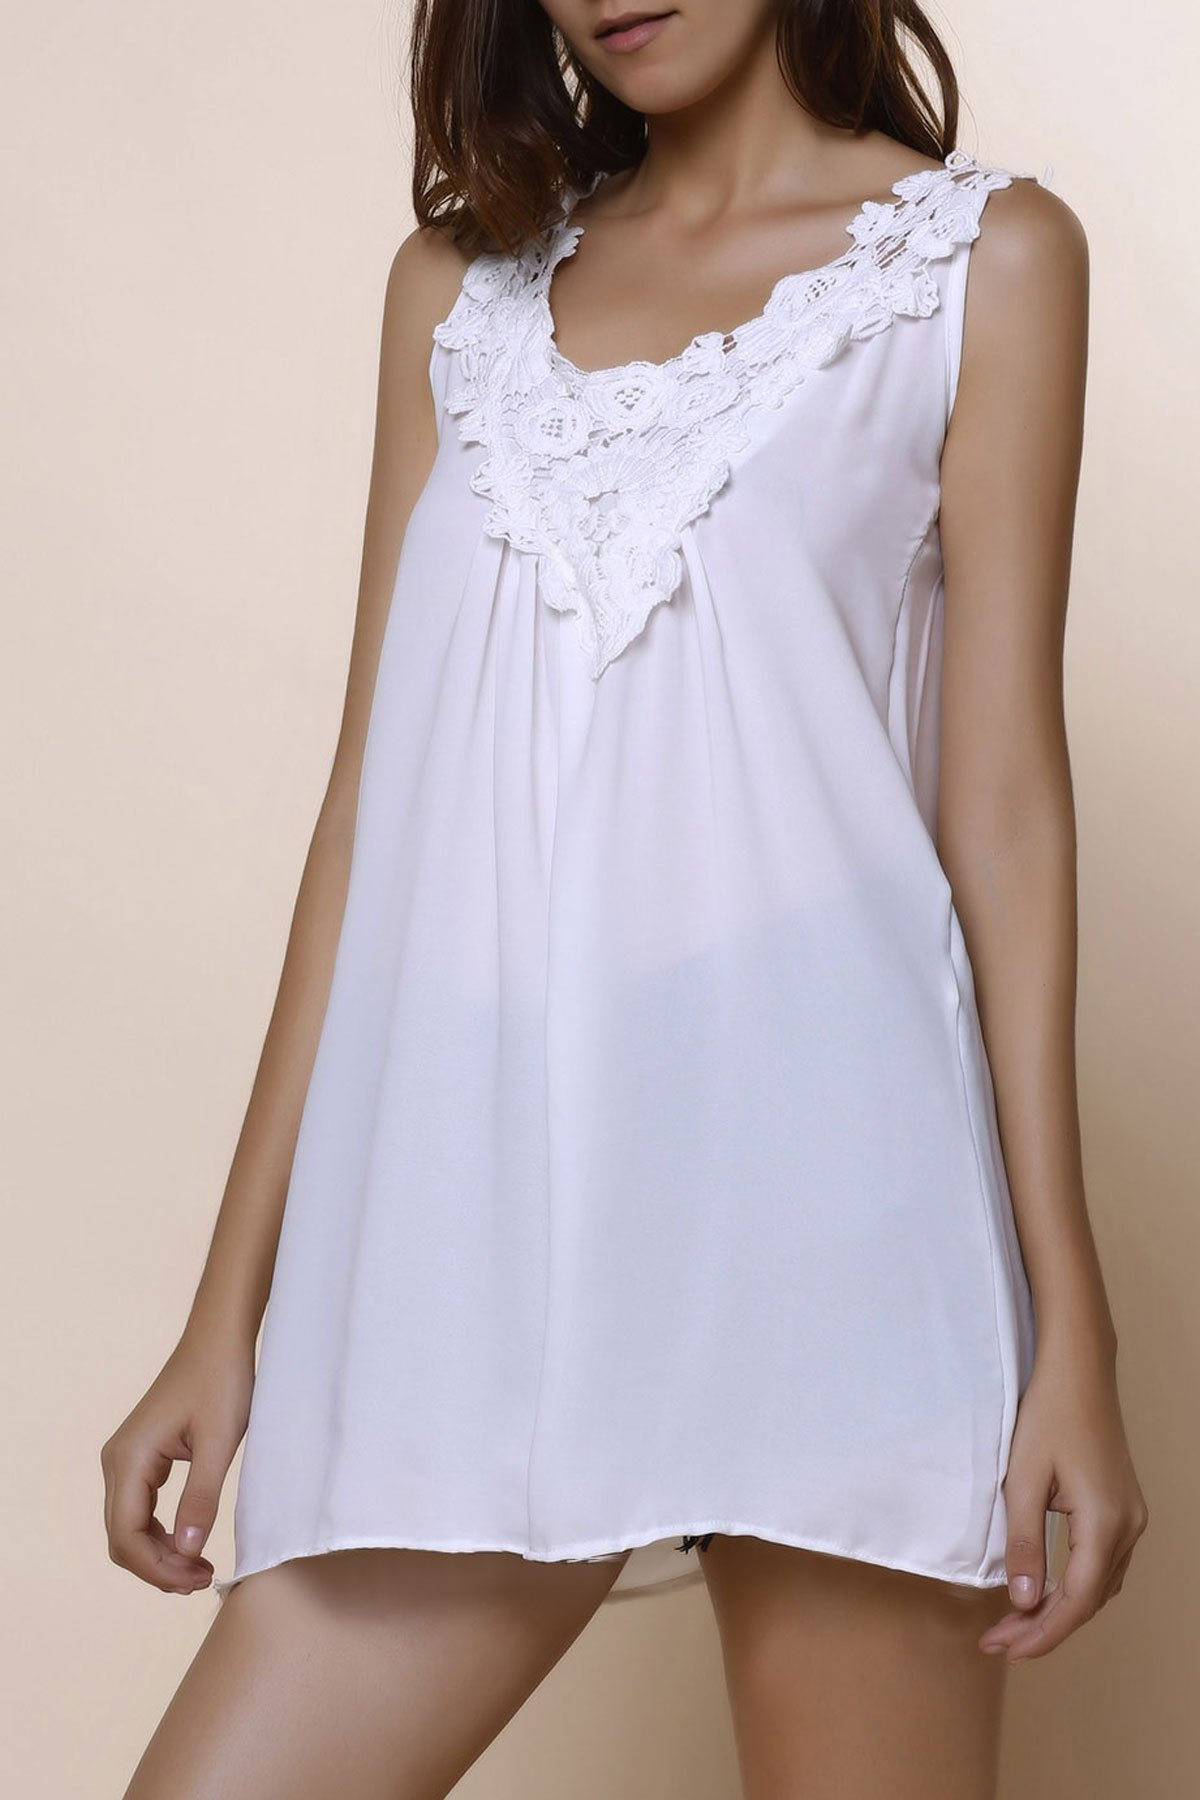 Romantic White Lace Spliced Scoop Neck Tank Top For Women - WHITE M